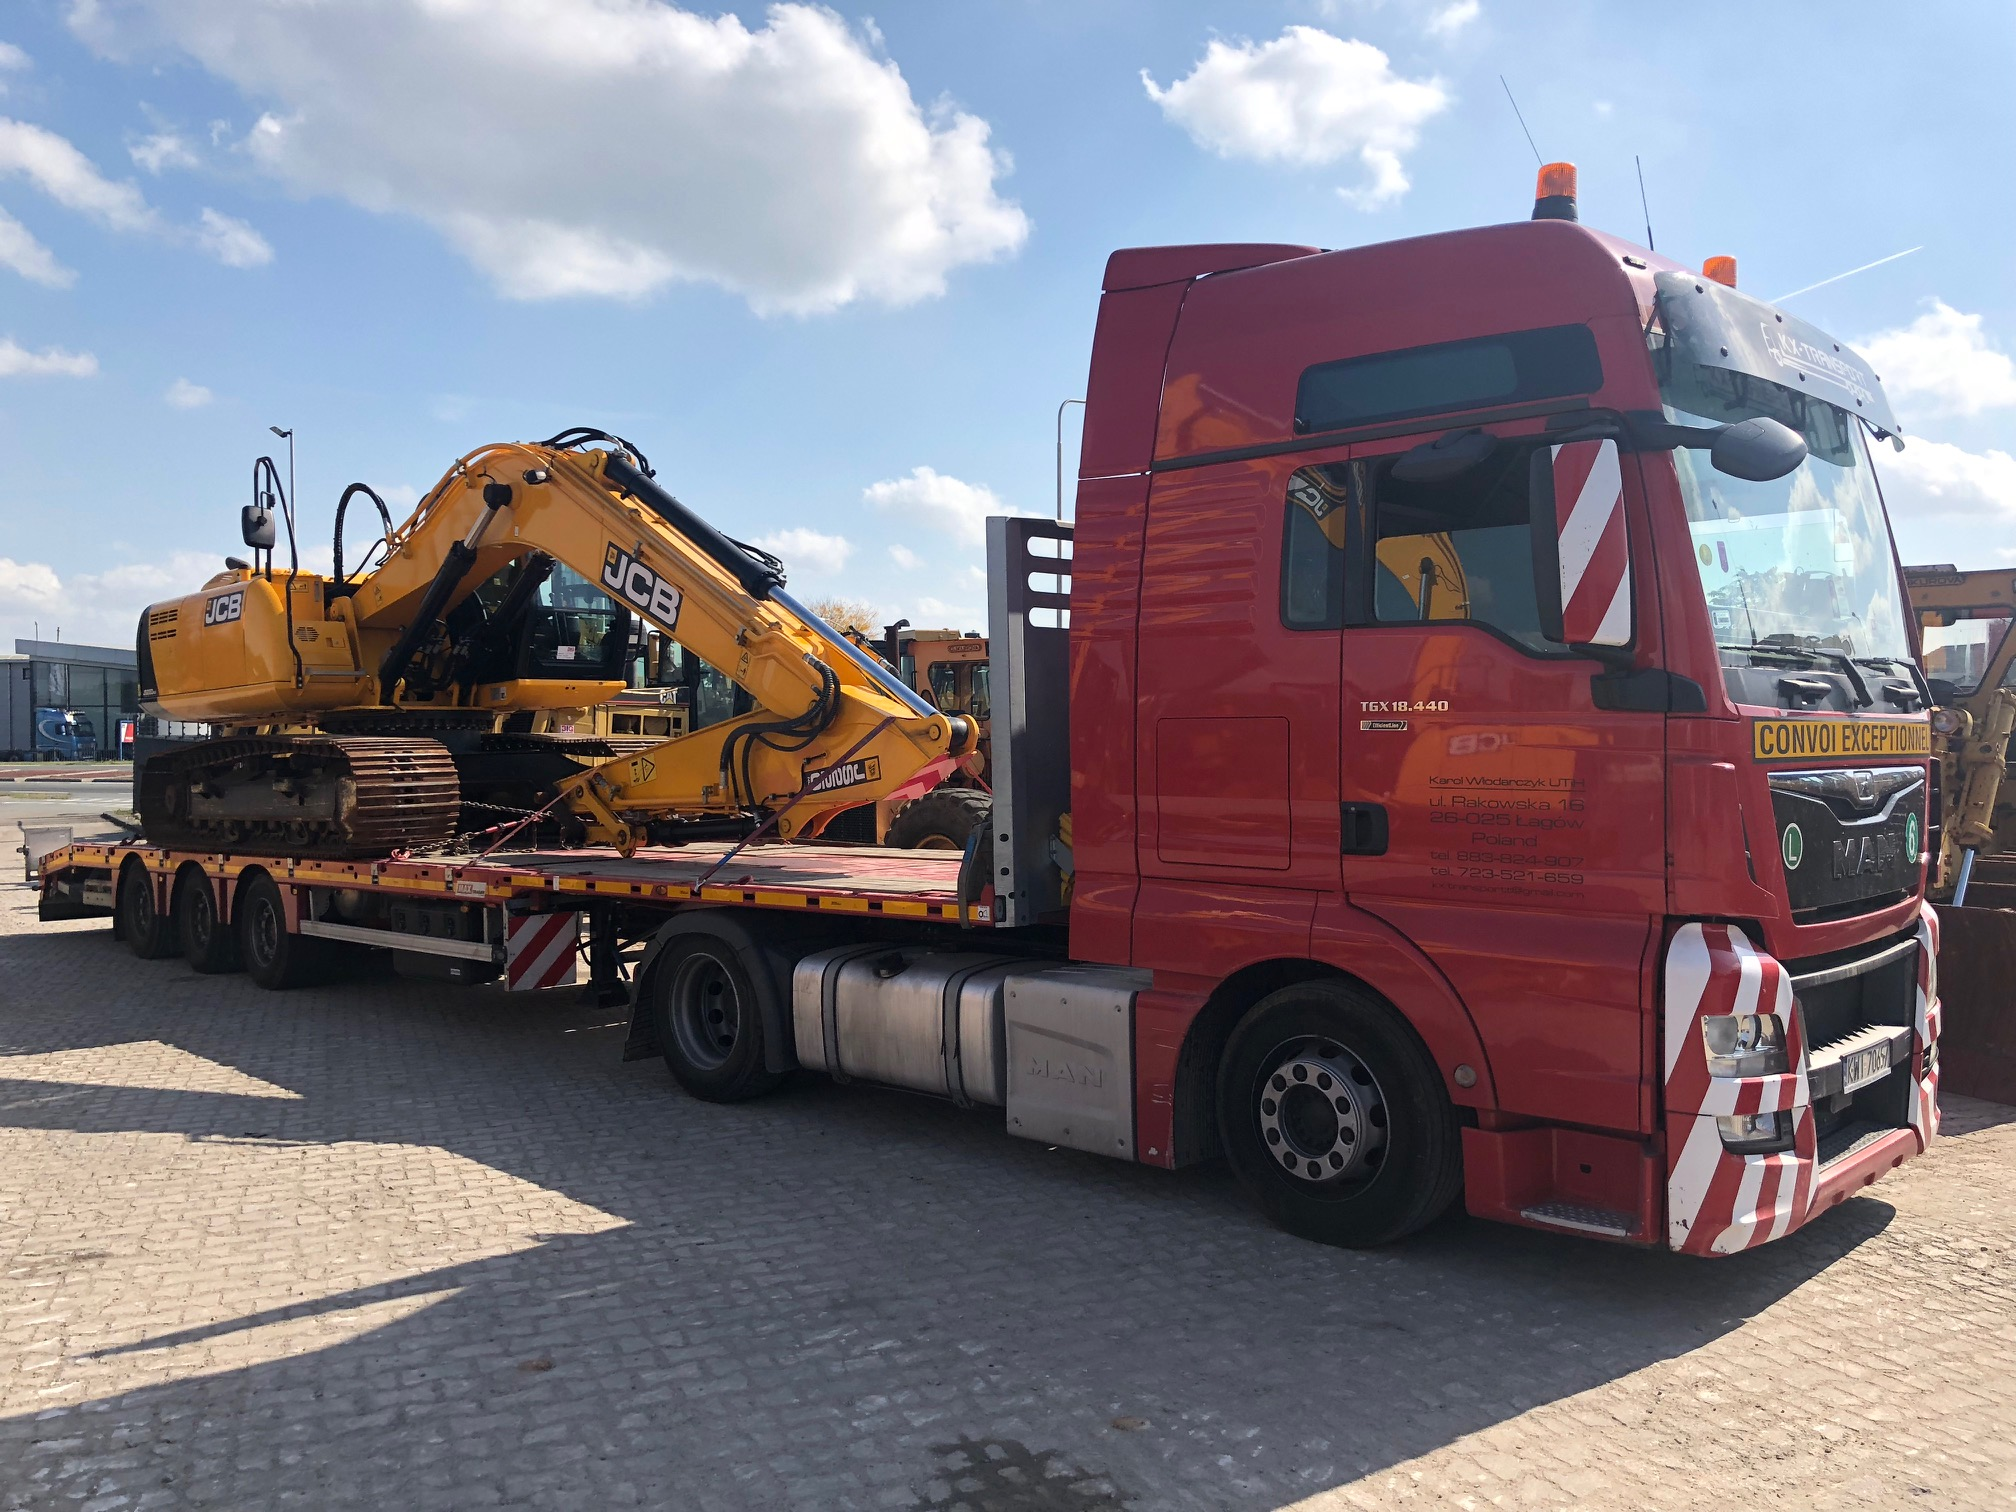 Good looking Tracked Excavator ready to be shipped to its new owner.jpg